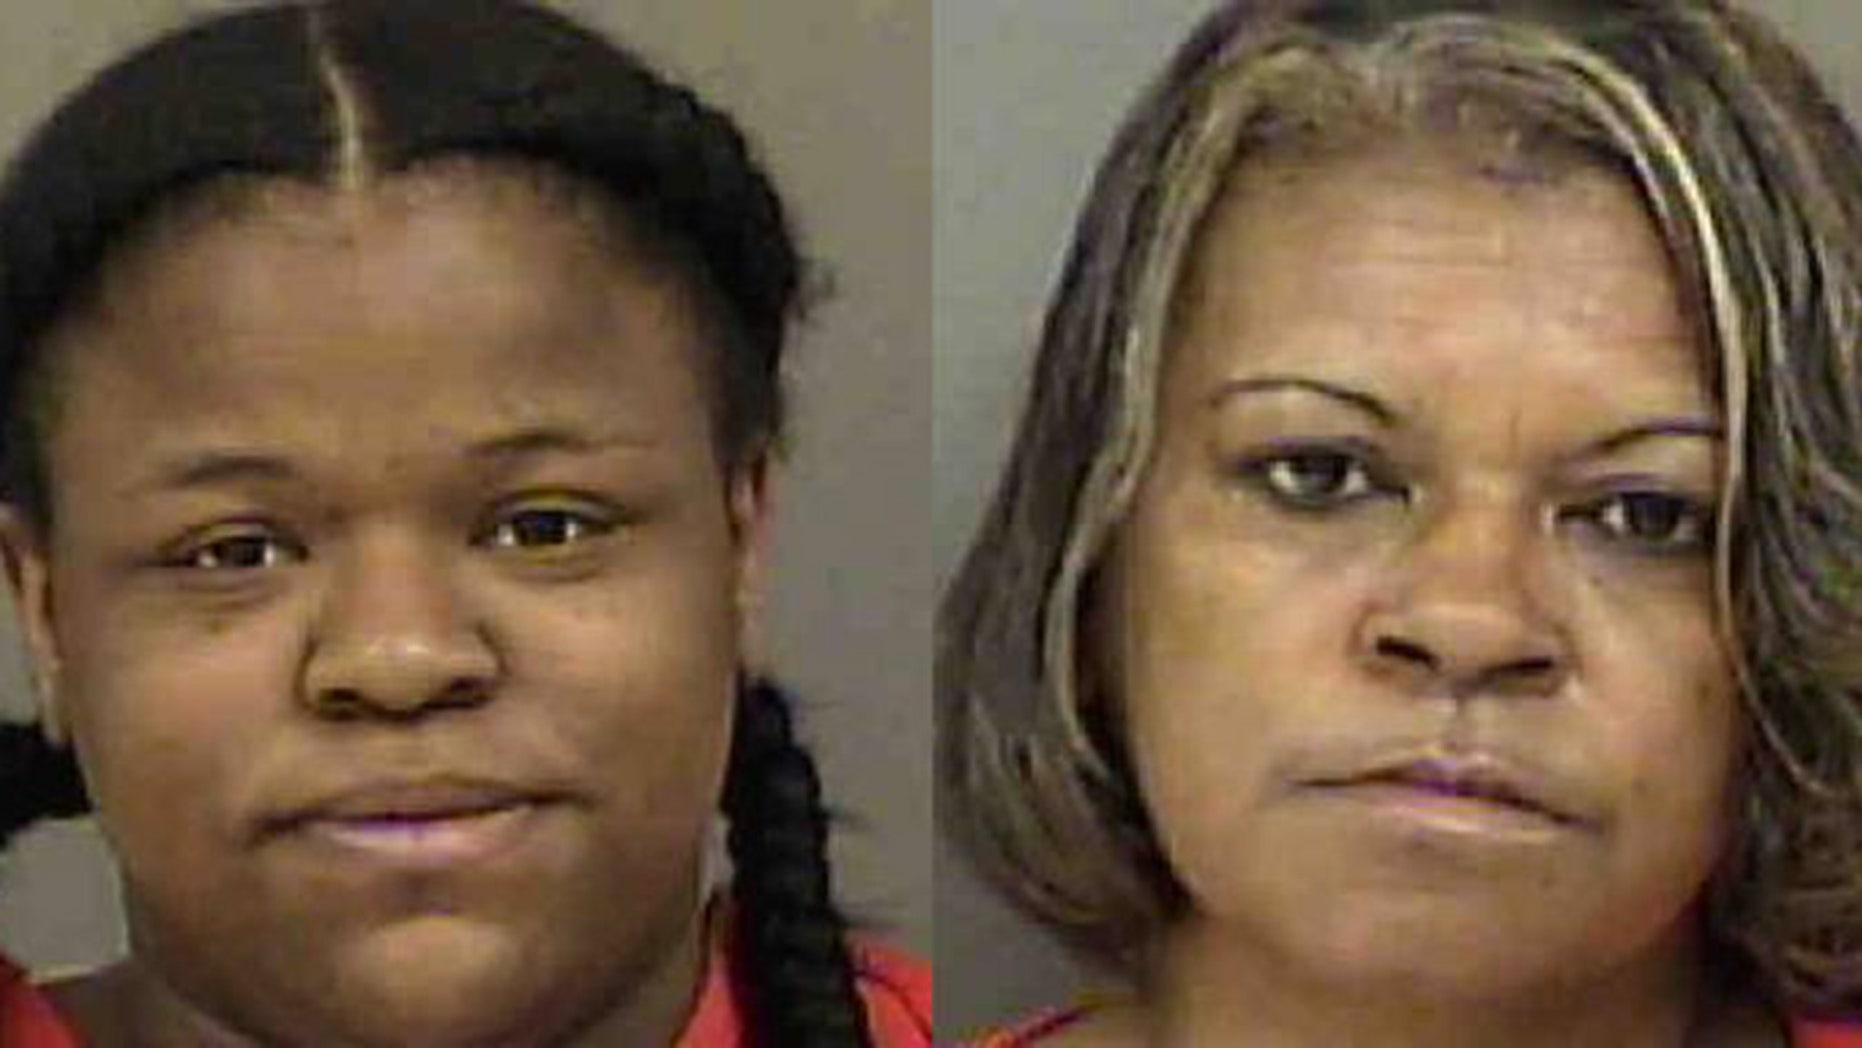 North Carolina woman, mother-in-law sex-trafficked 3 minors to help pay for man's jail bond: prosecutors